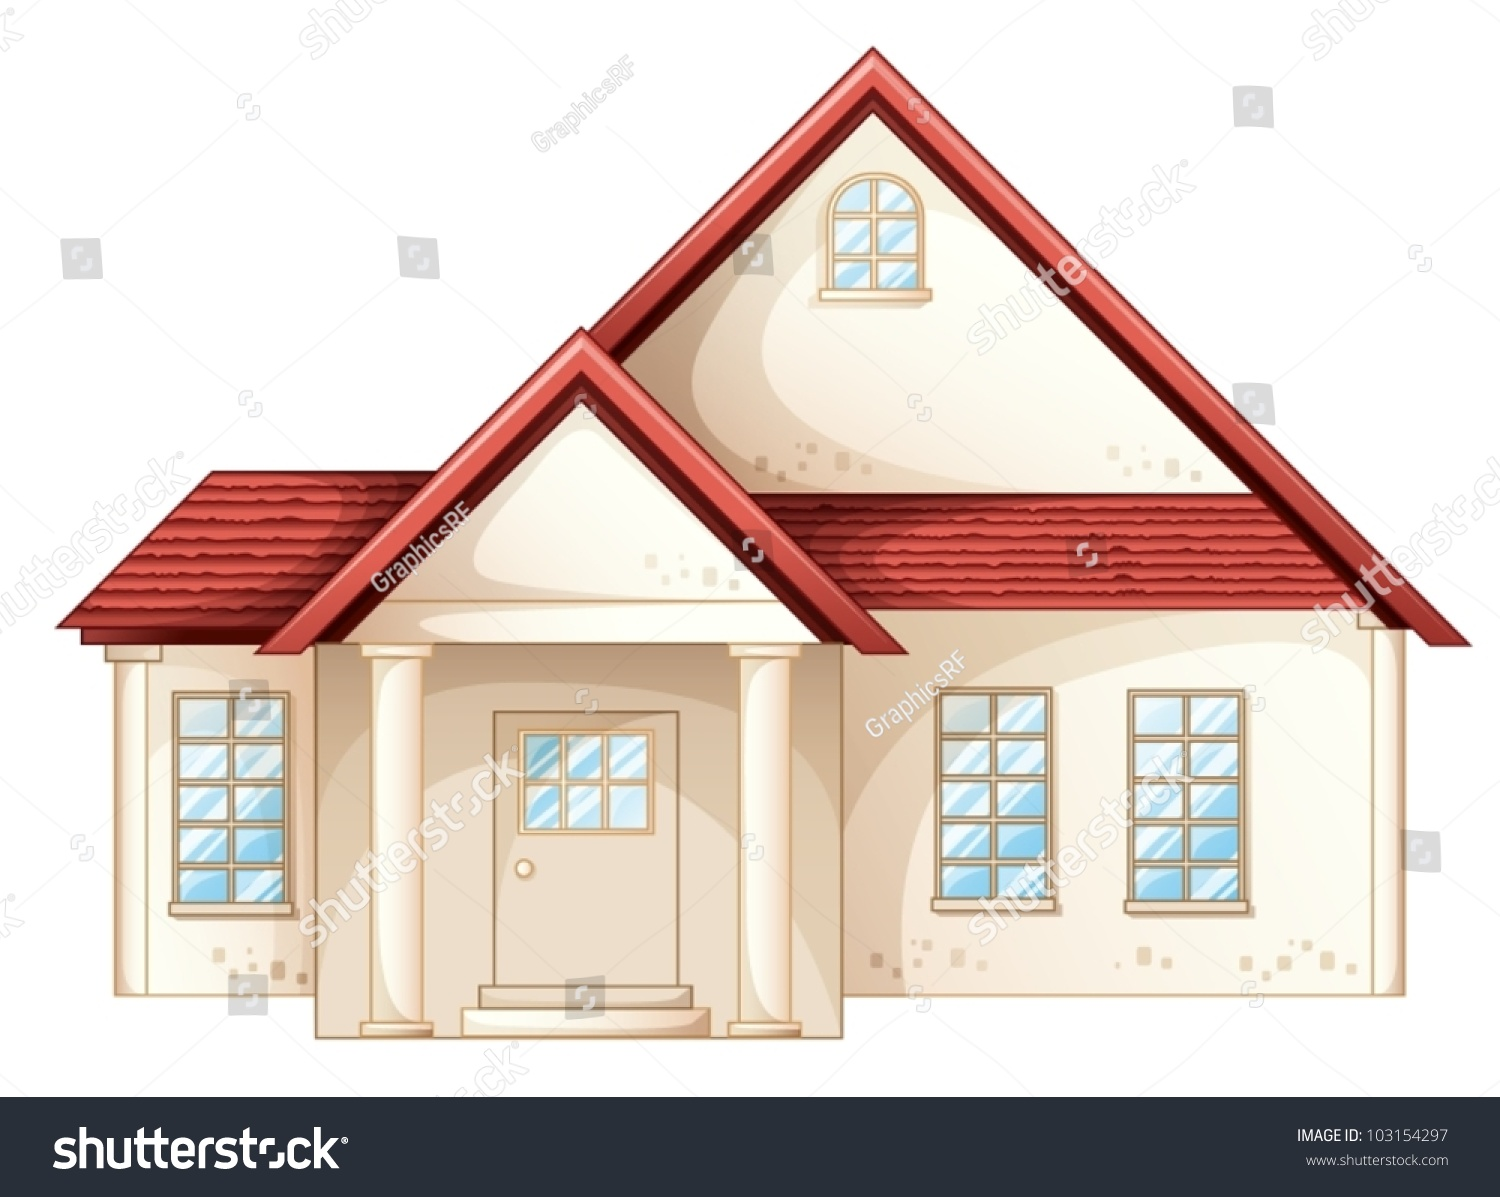 Illustration a simple house front view. Illustration Simple House Front View Stock Vector 103154297